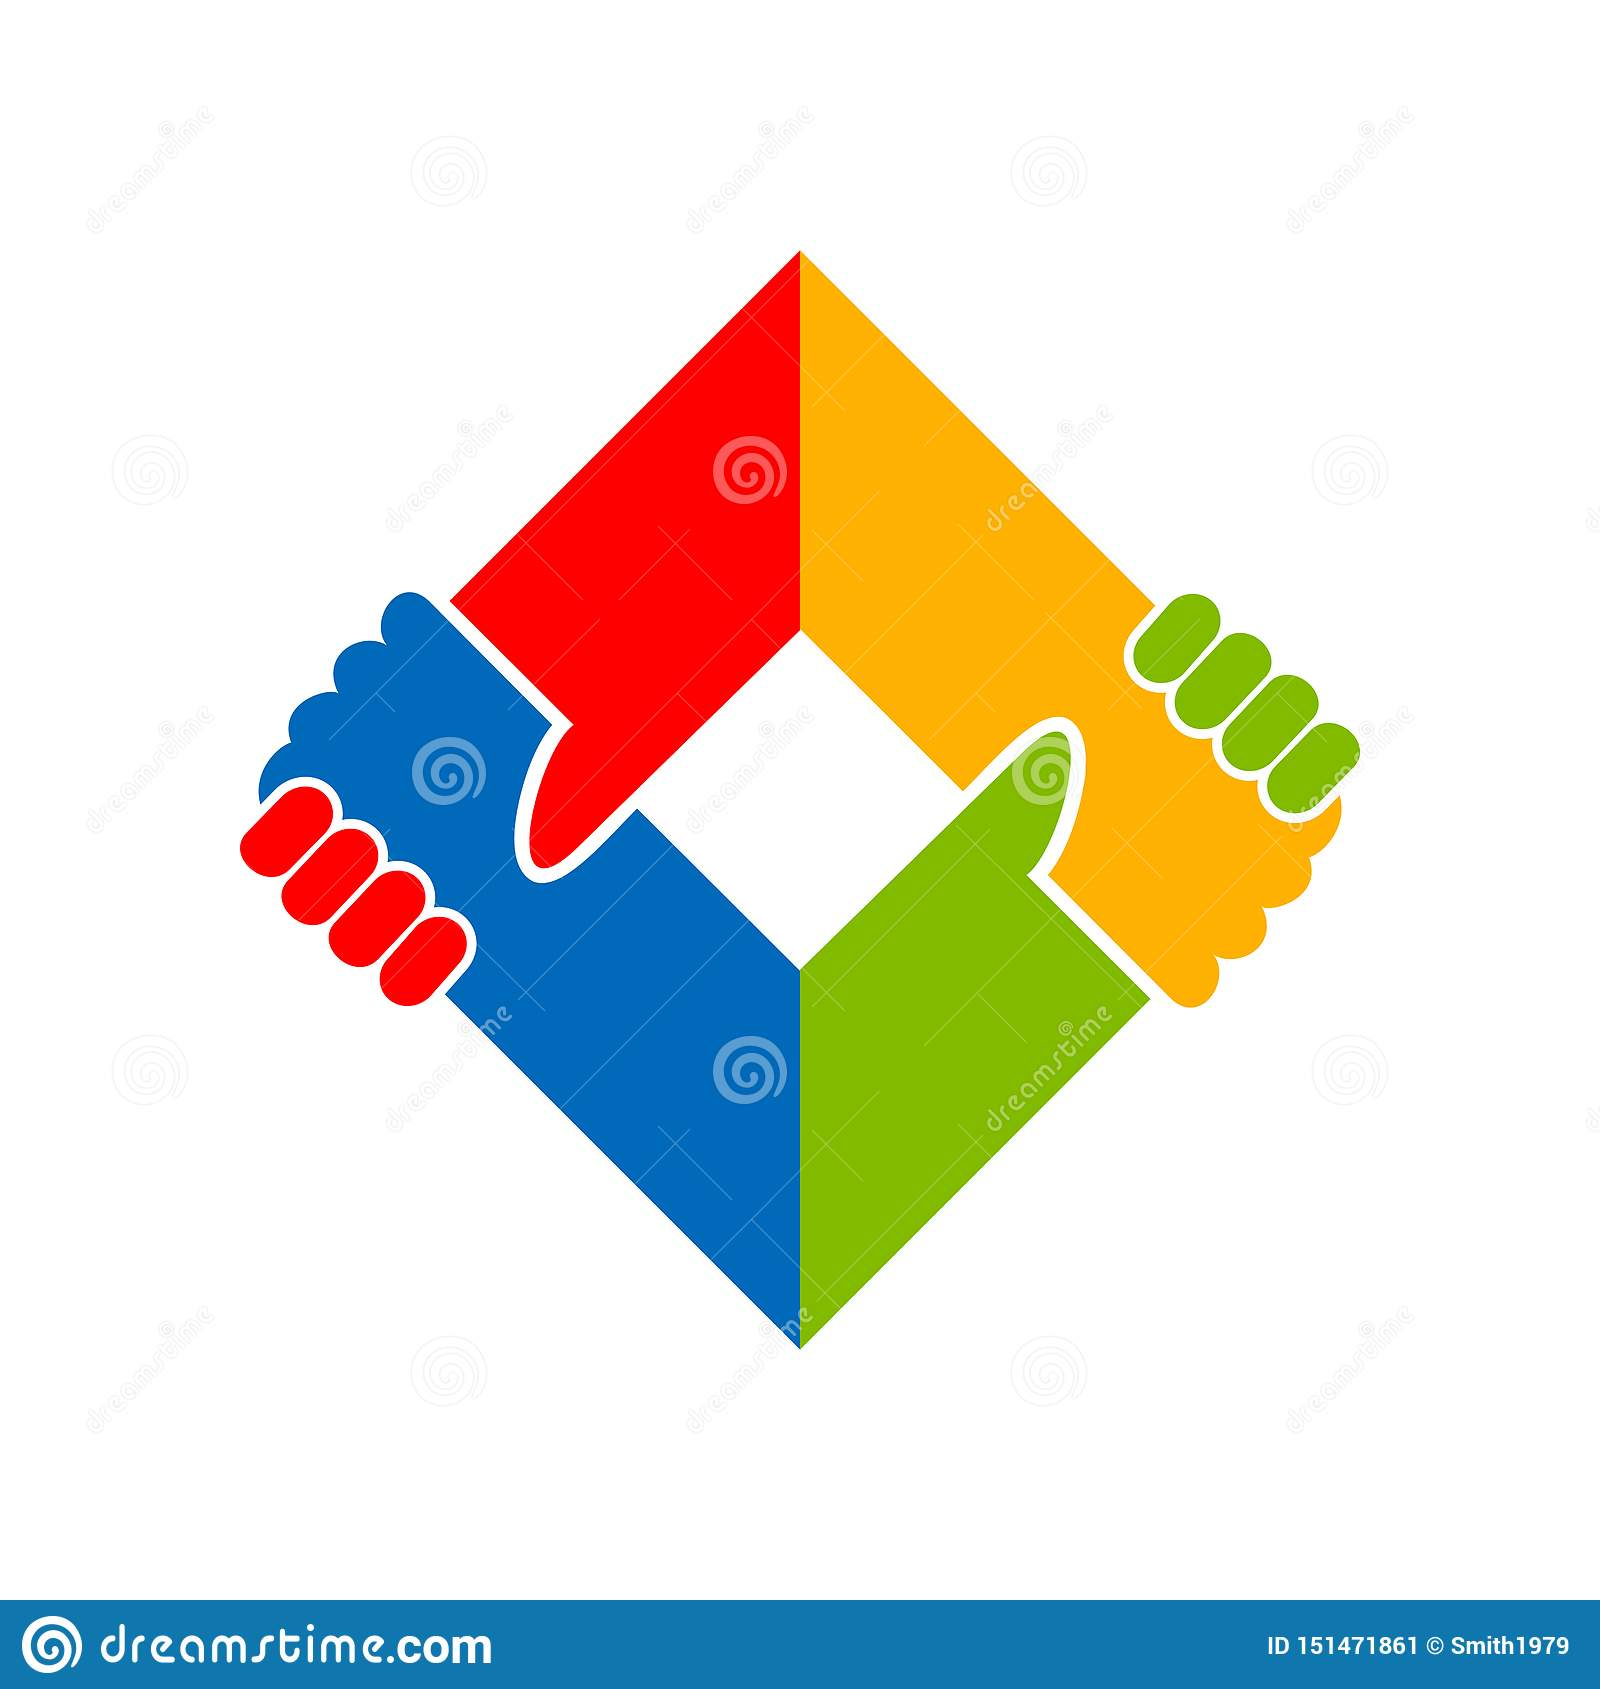 Holding Hand Unity Social Campaign Symbol Design Stock Vector Illustration Of Deal Hold 151471861